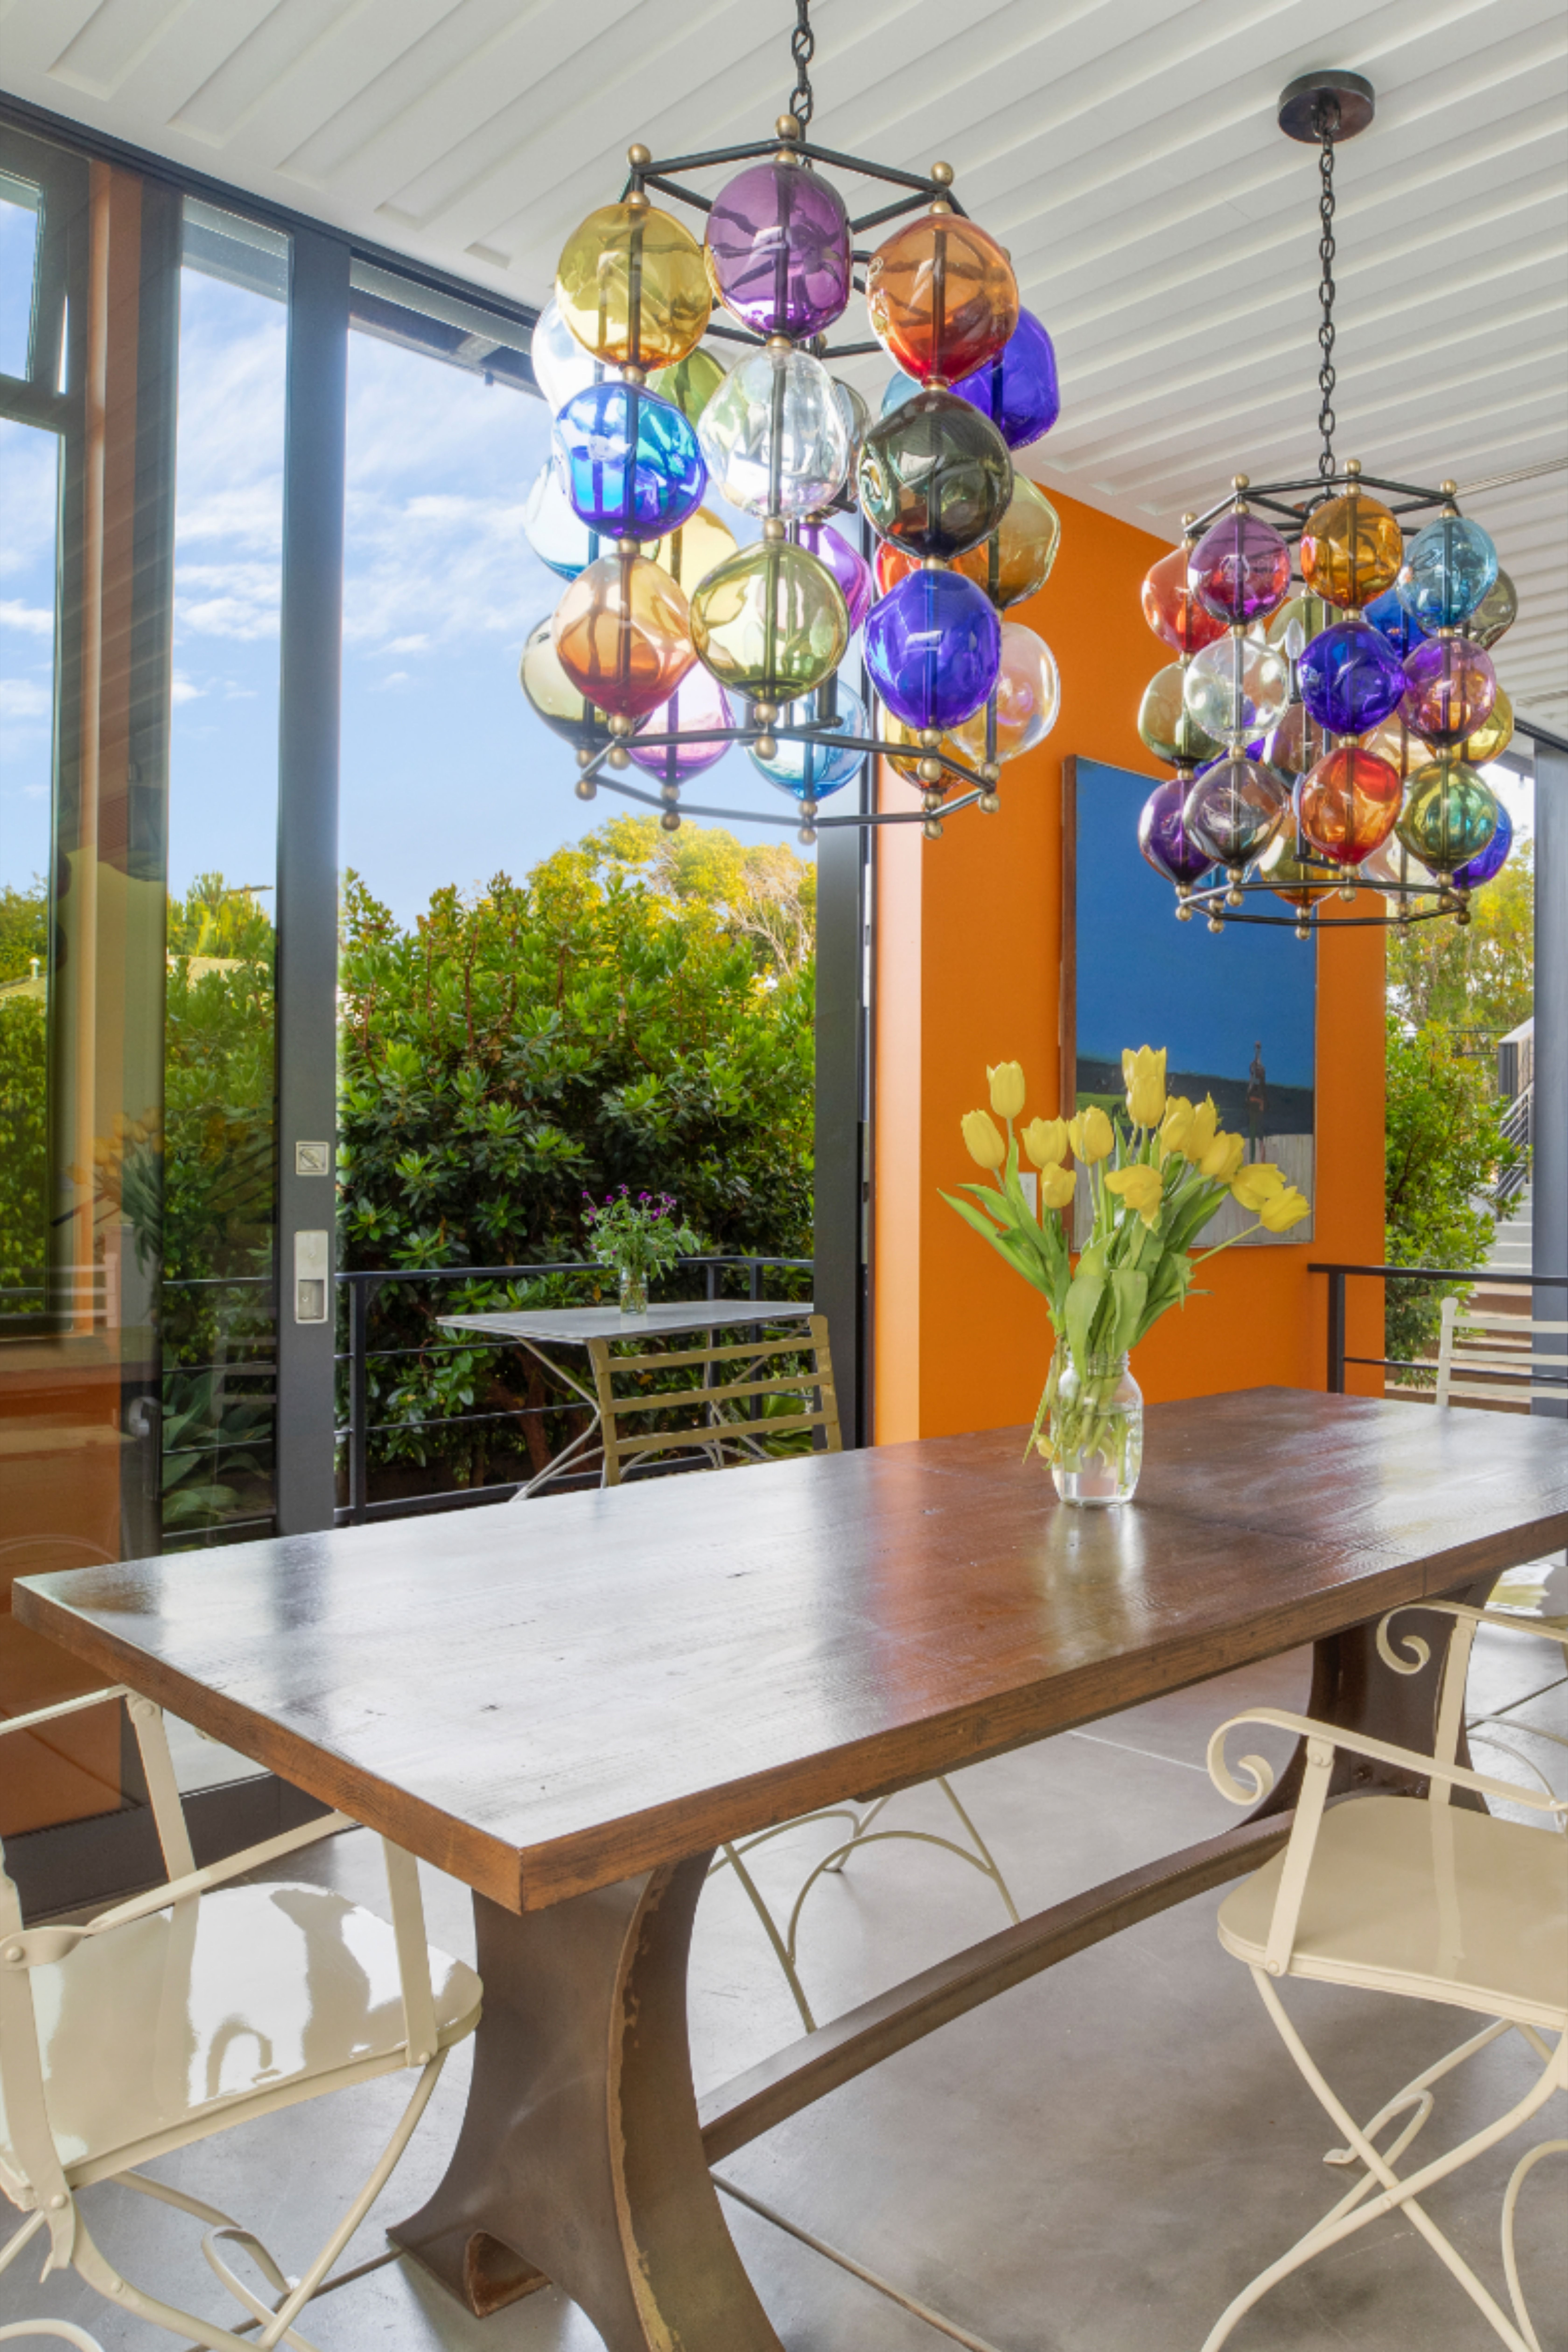 Today we're looking at a home in Venice that's truly unique, created by a toy company executive that wanted to showcase his style — and his eclectic art collection. His custom-made house features a distinct, industrial design, vibrant color hues, and artwork to match. #livingroom #livingroomdecor #chandelier #colorfuldecor #beautifulhomes #homesweethome #industrialdesign